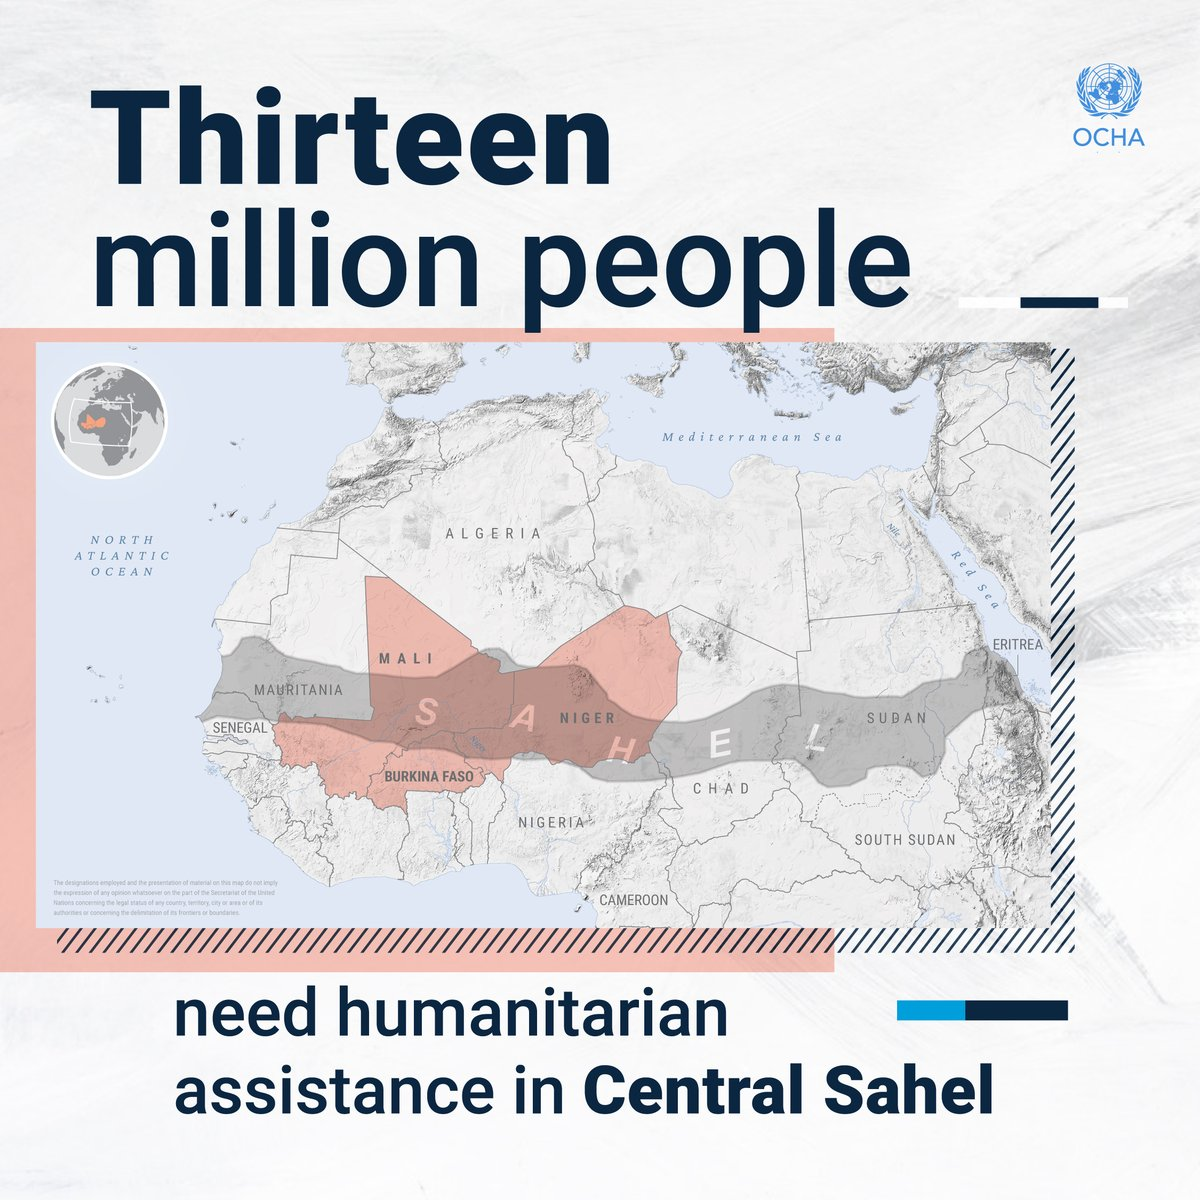 People in the Central Sahel are facing a catastrophe.  A record 13.4 million people need humanitarian assistance and protection to survive.  We must act for #SahelNow to avoid more human suffering. https://t.co/dtDcnA4oS2 https://t.co/WkzFStrPkj